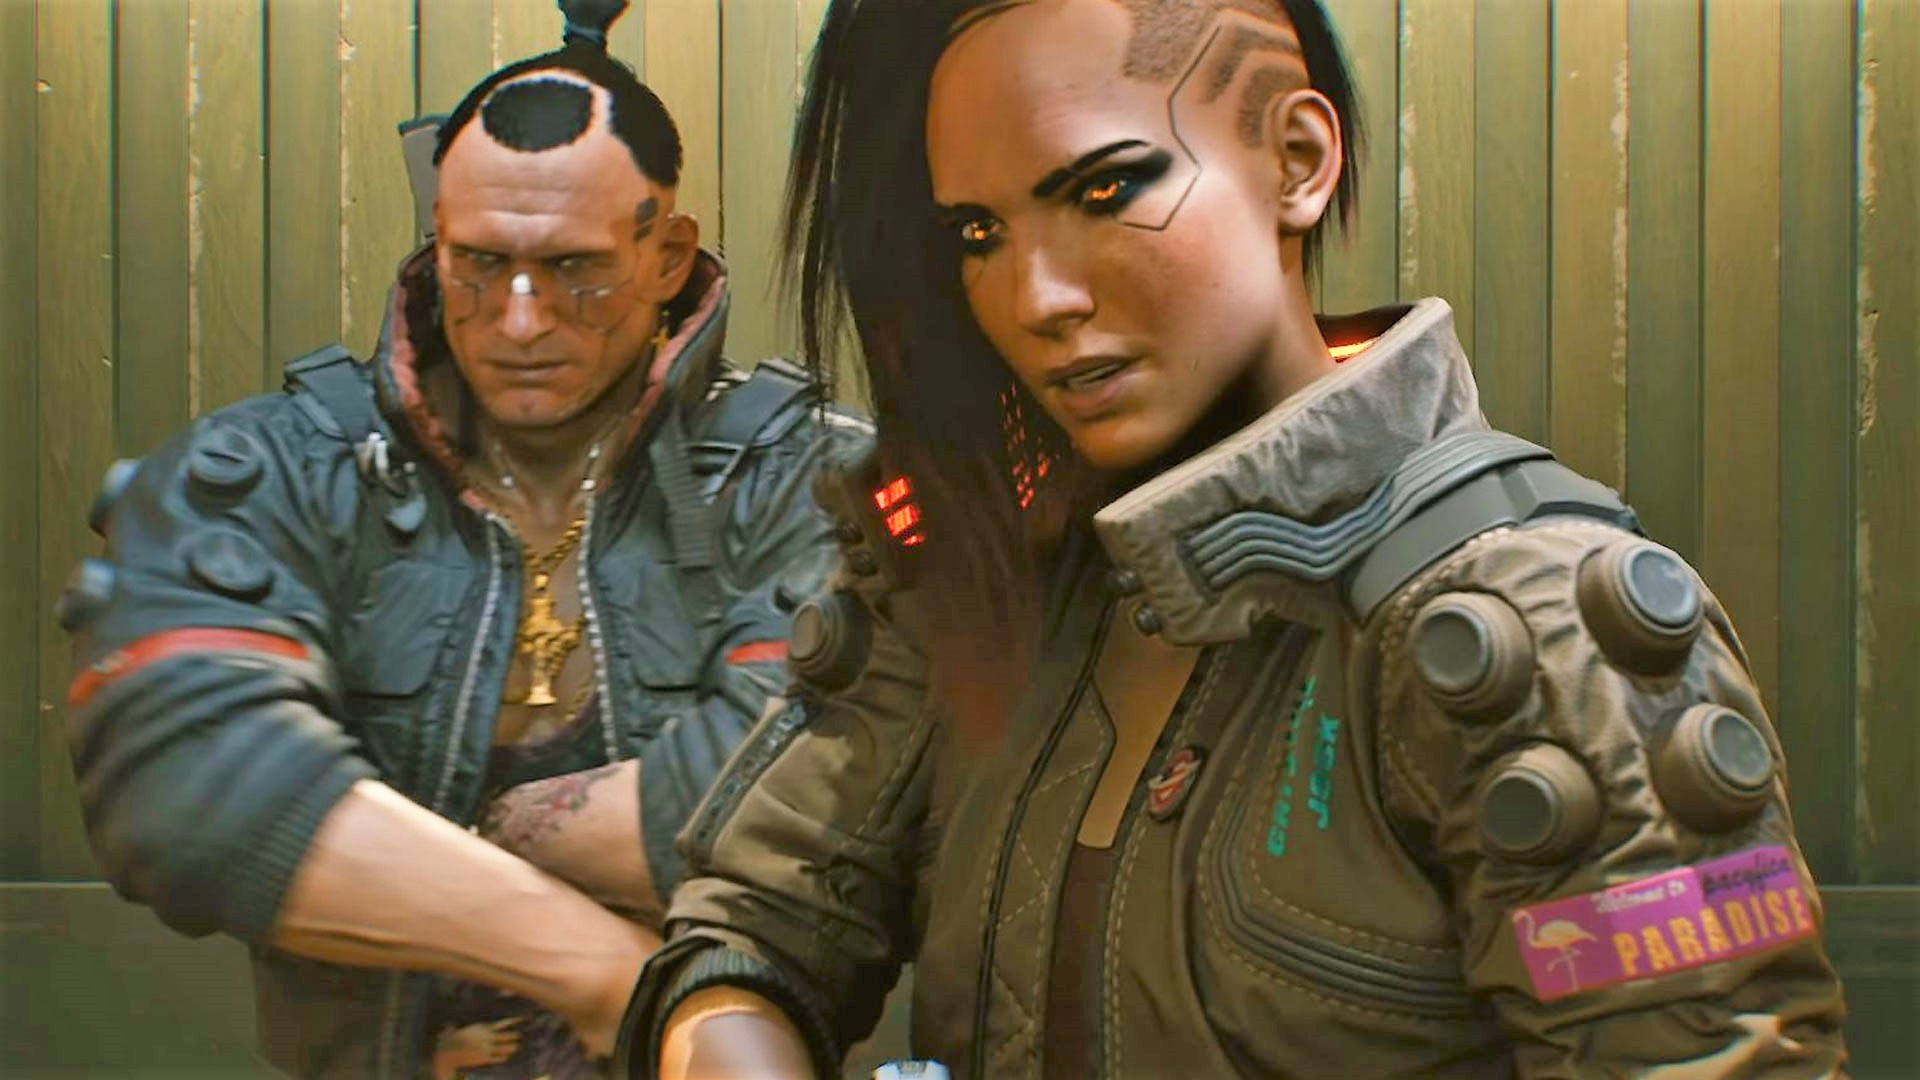 Rumour: Cyberpunk 2077 Was Delayed Because It Runs Badly on PS4 and Xbox One